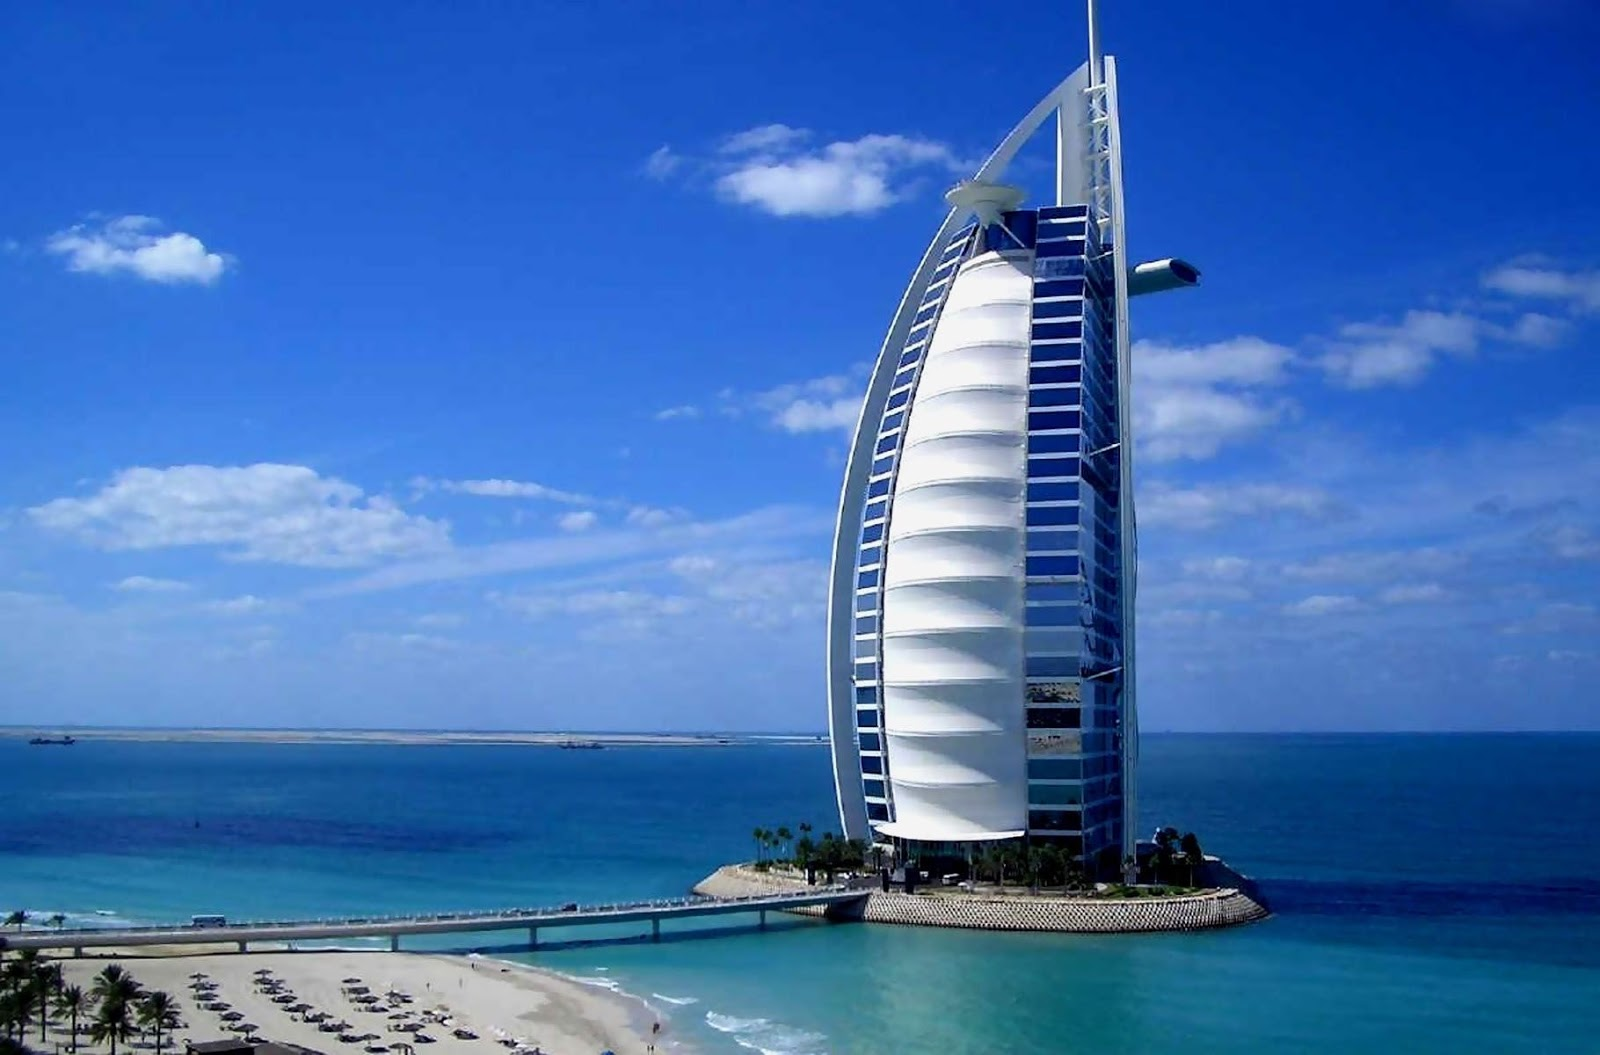 Best Hotels To Stay In Dubai